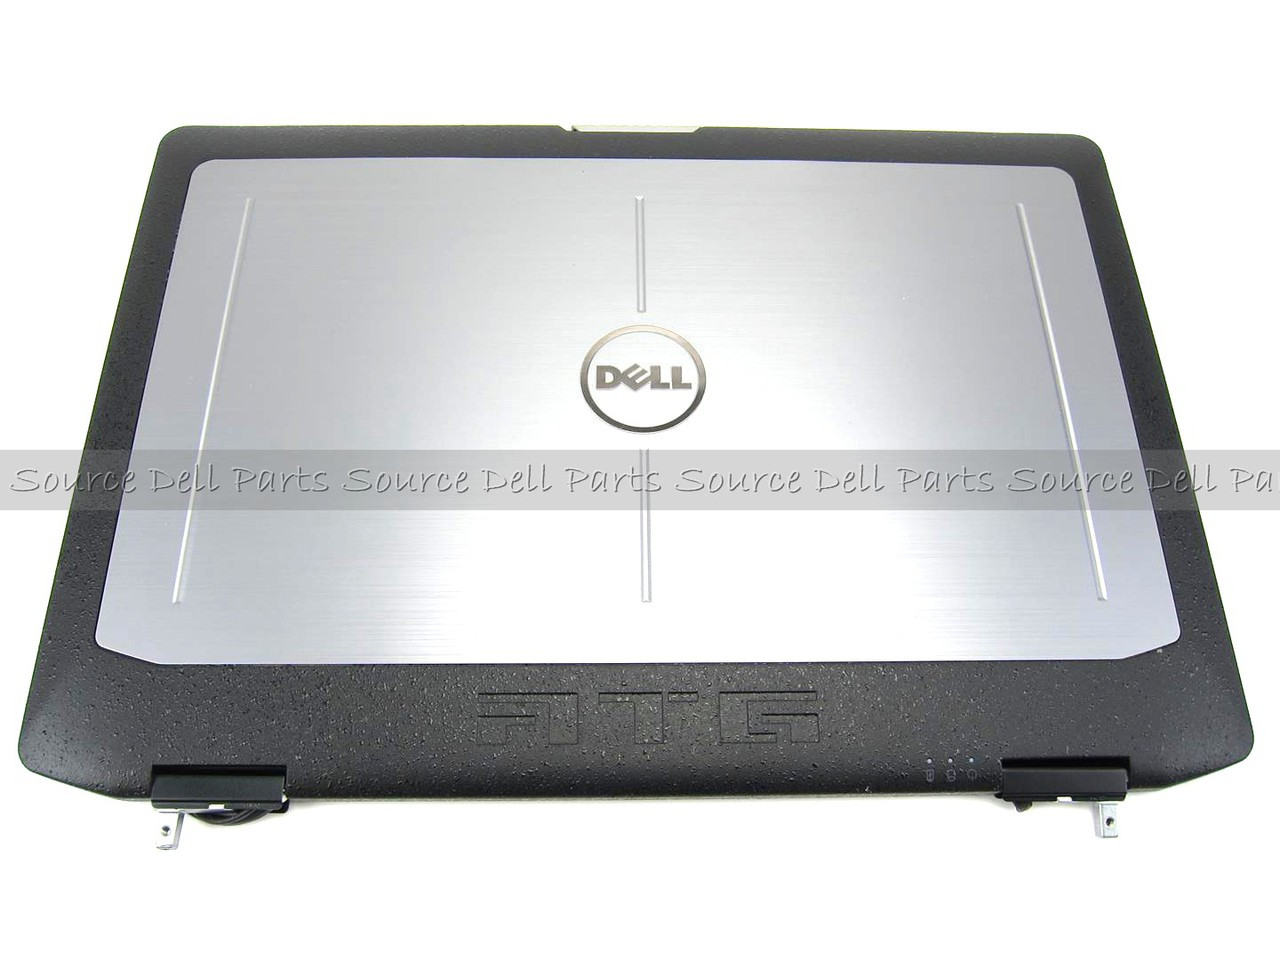 Dell Latitude E6430 ATG Lcd Back Cover with Hinges For NonTouch Screen - 3N50N (A)